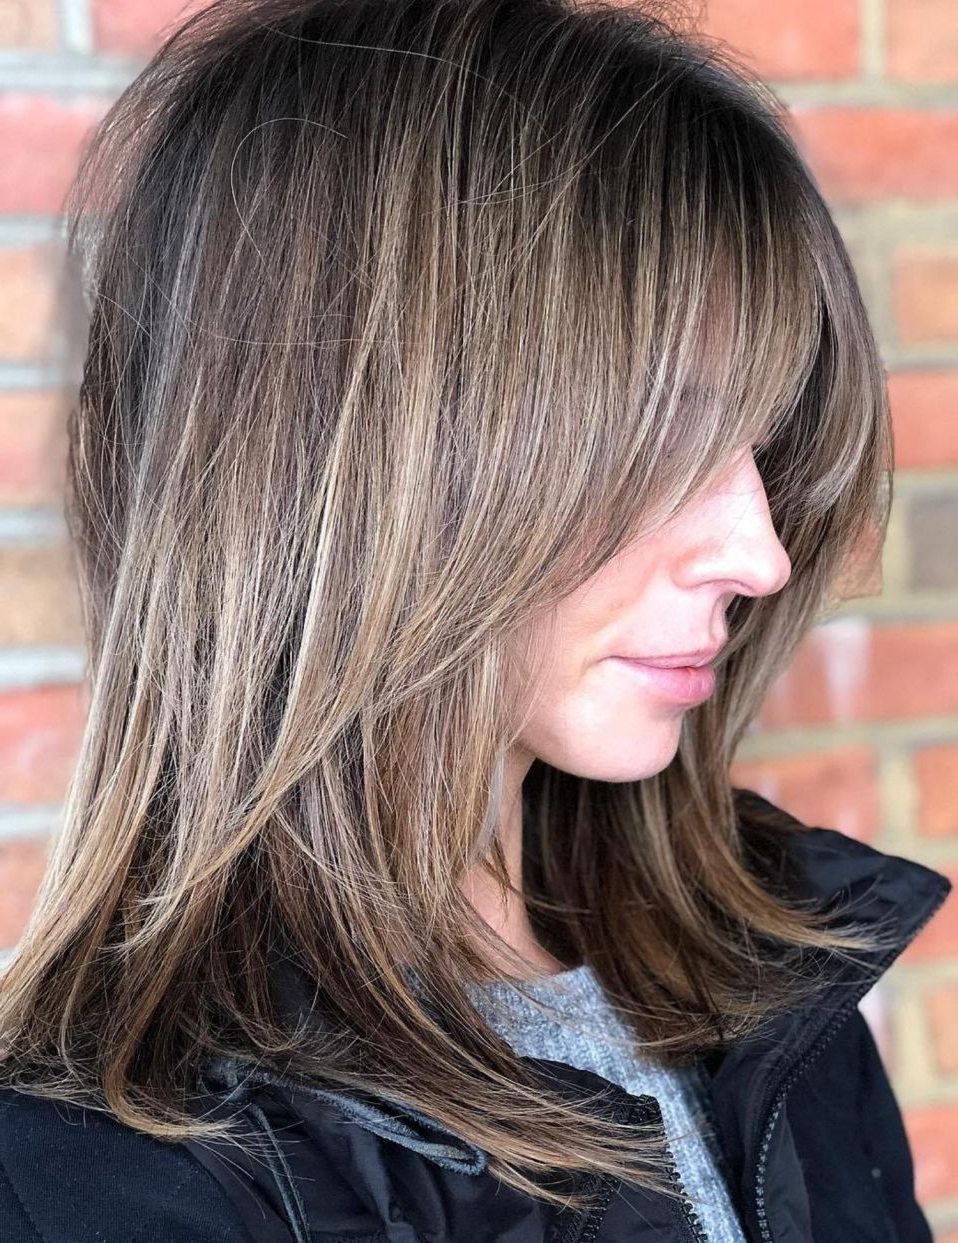 Pin On Hair Cuts Intended For Well Known Longer Textured Haircuts With Sun Kissed Balayage (View 4 of 20)